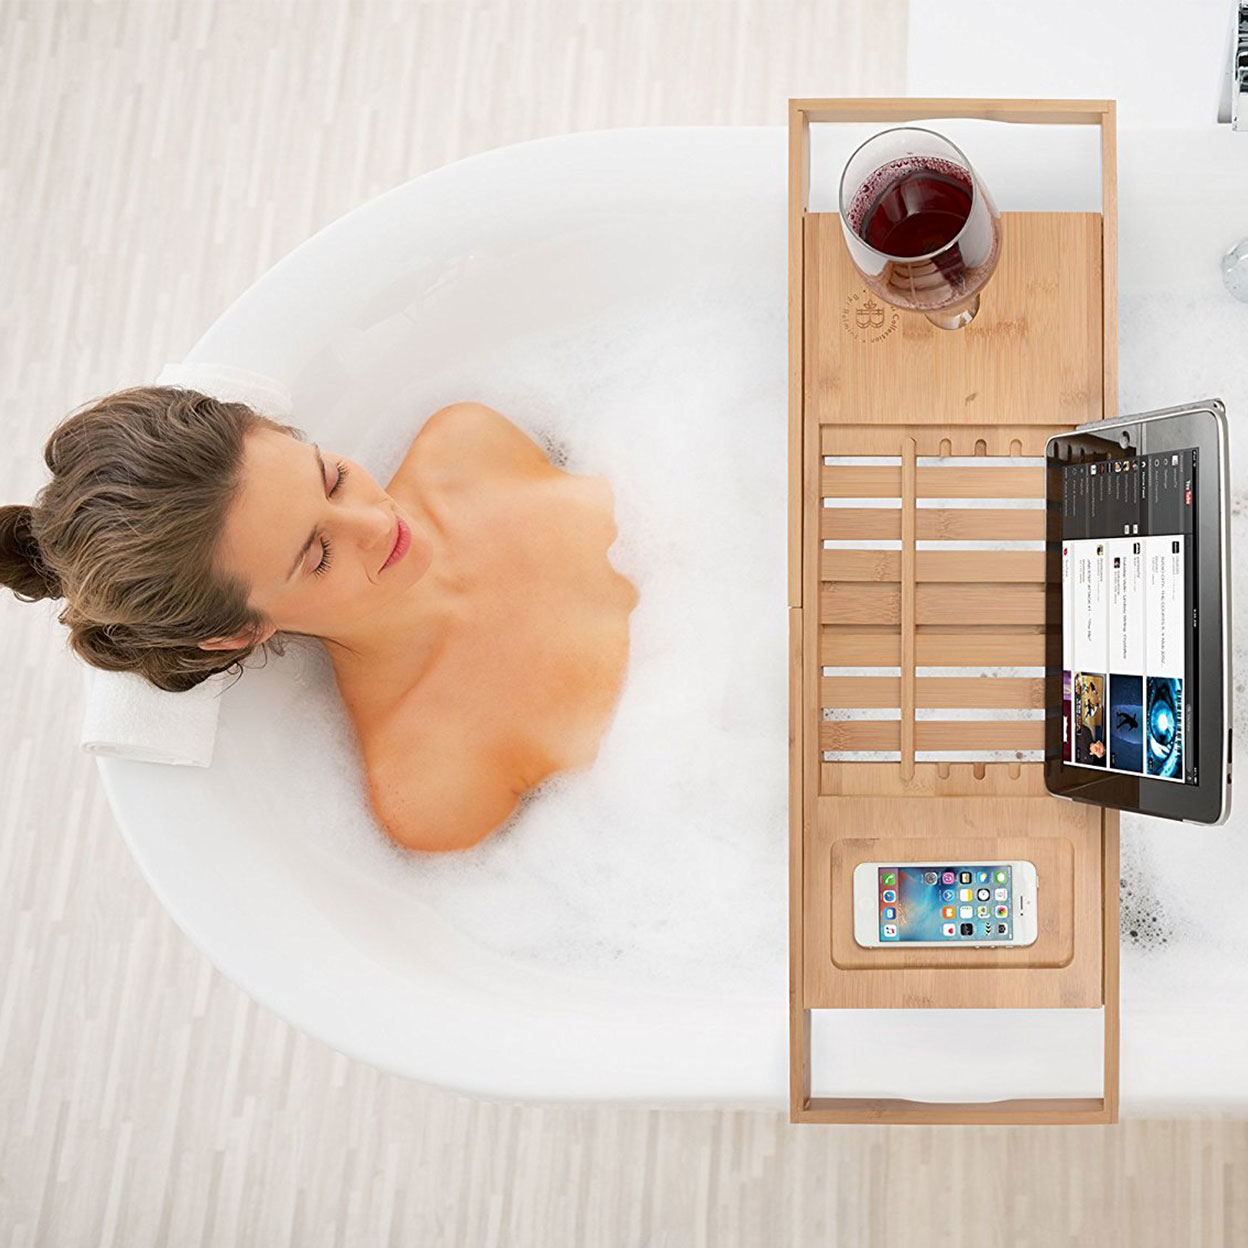 Bambusi By Belmint 100% Bamboo Bathtub Caddy with Extendable Sides, Cellphone Tray & Integrated Wineglass Holder 59b9aaa22a00e46d944912c6